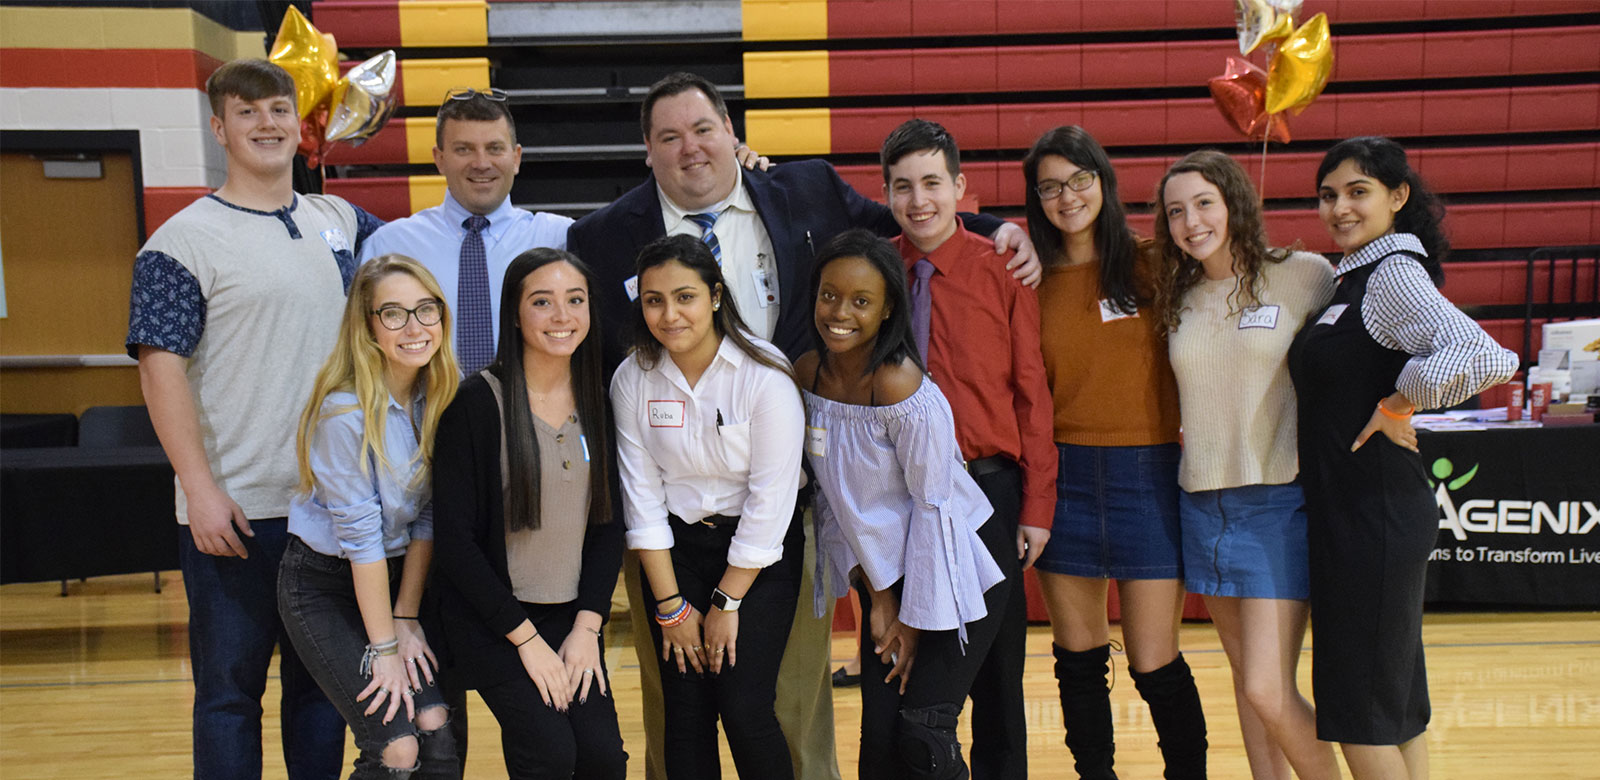 VIDEO: Sachem Hosts Career Connection Events